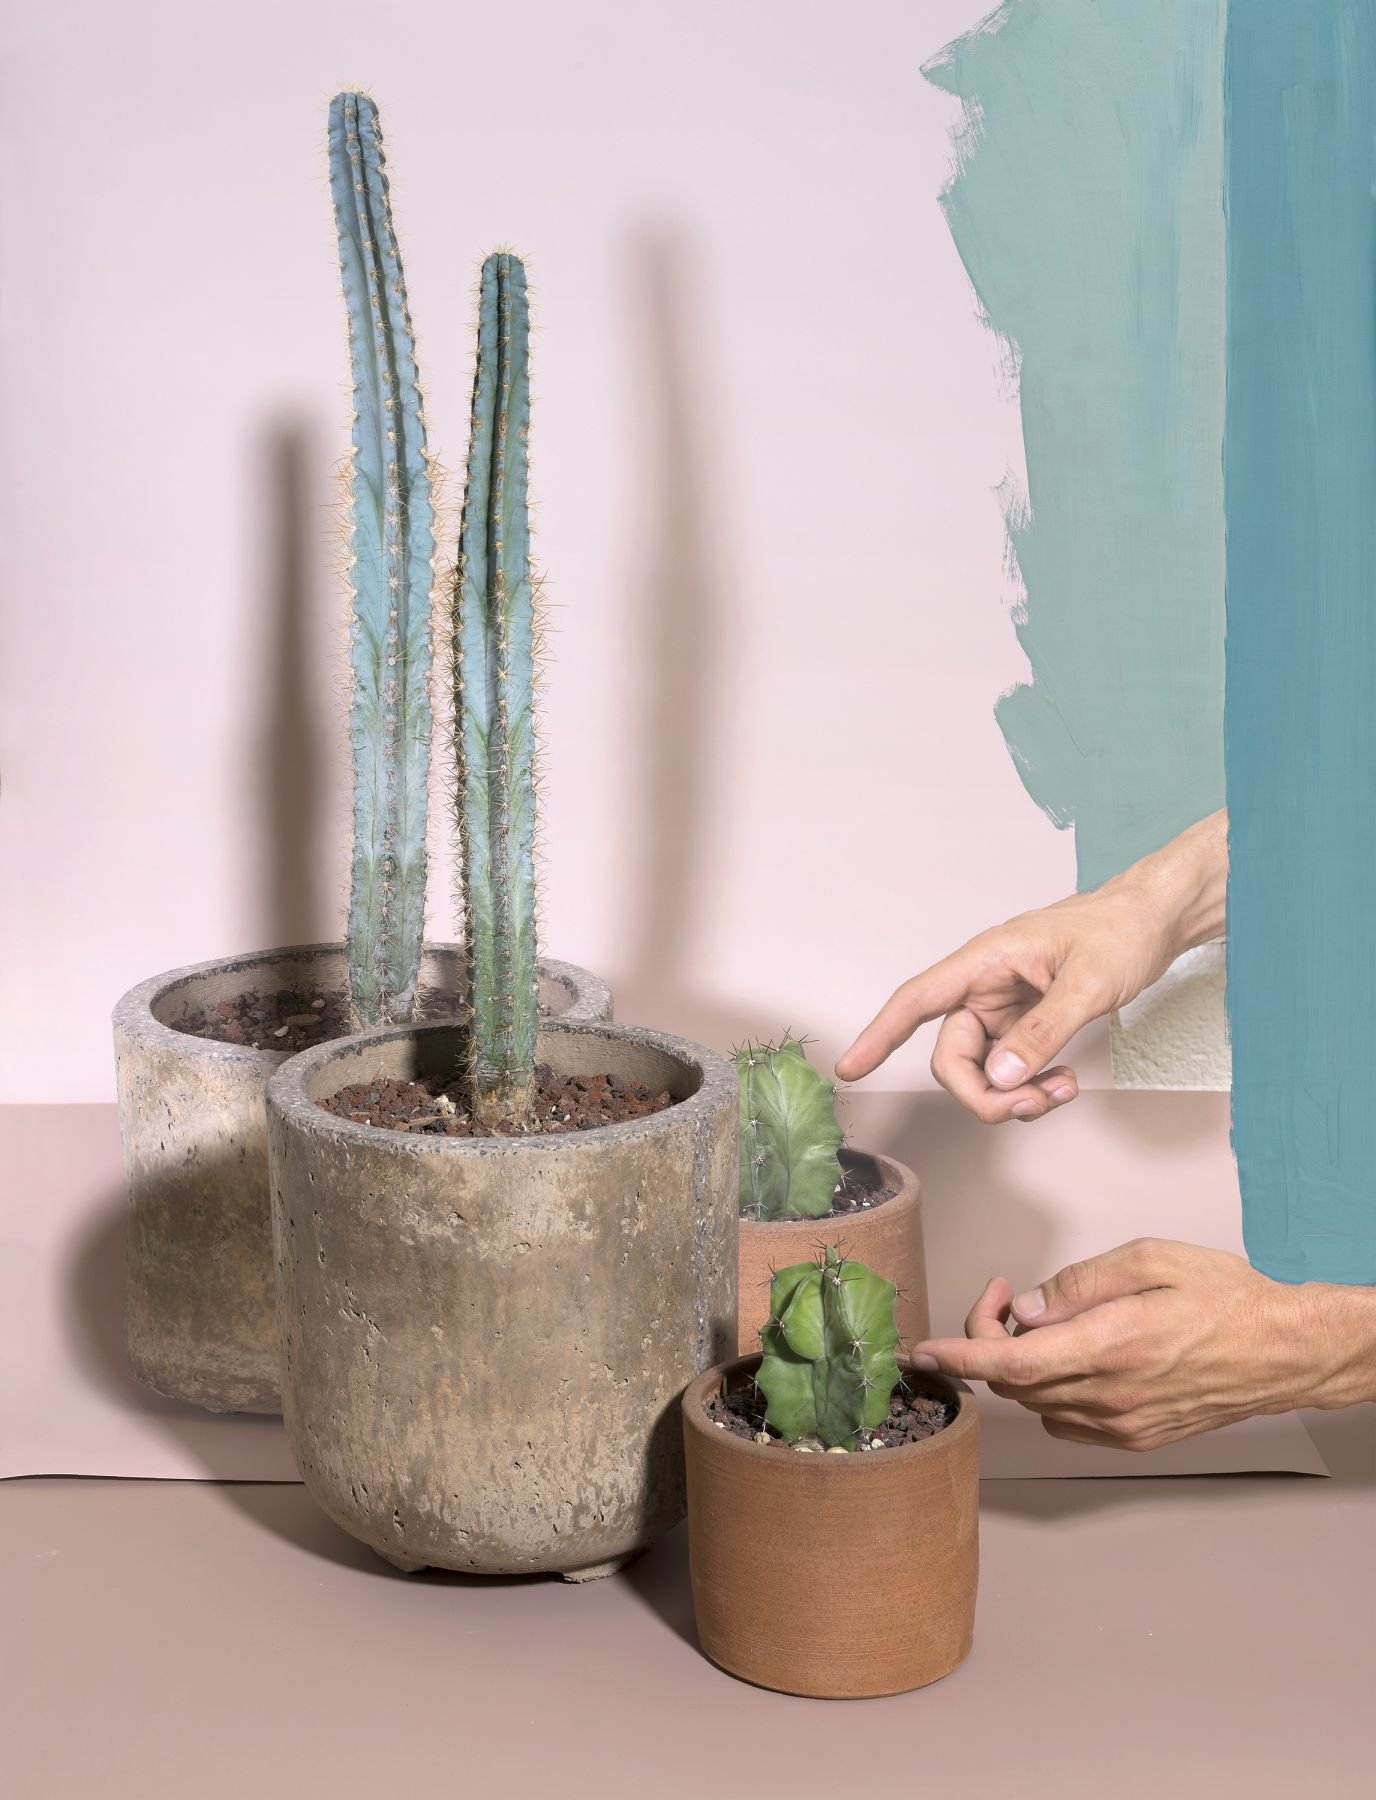 print featuring cactus and hands by the artist John Houck